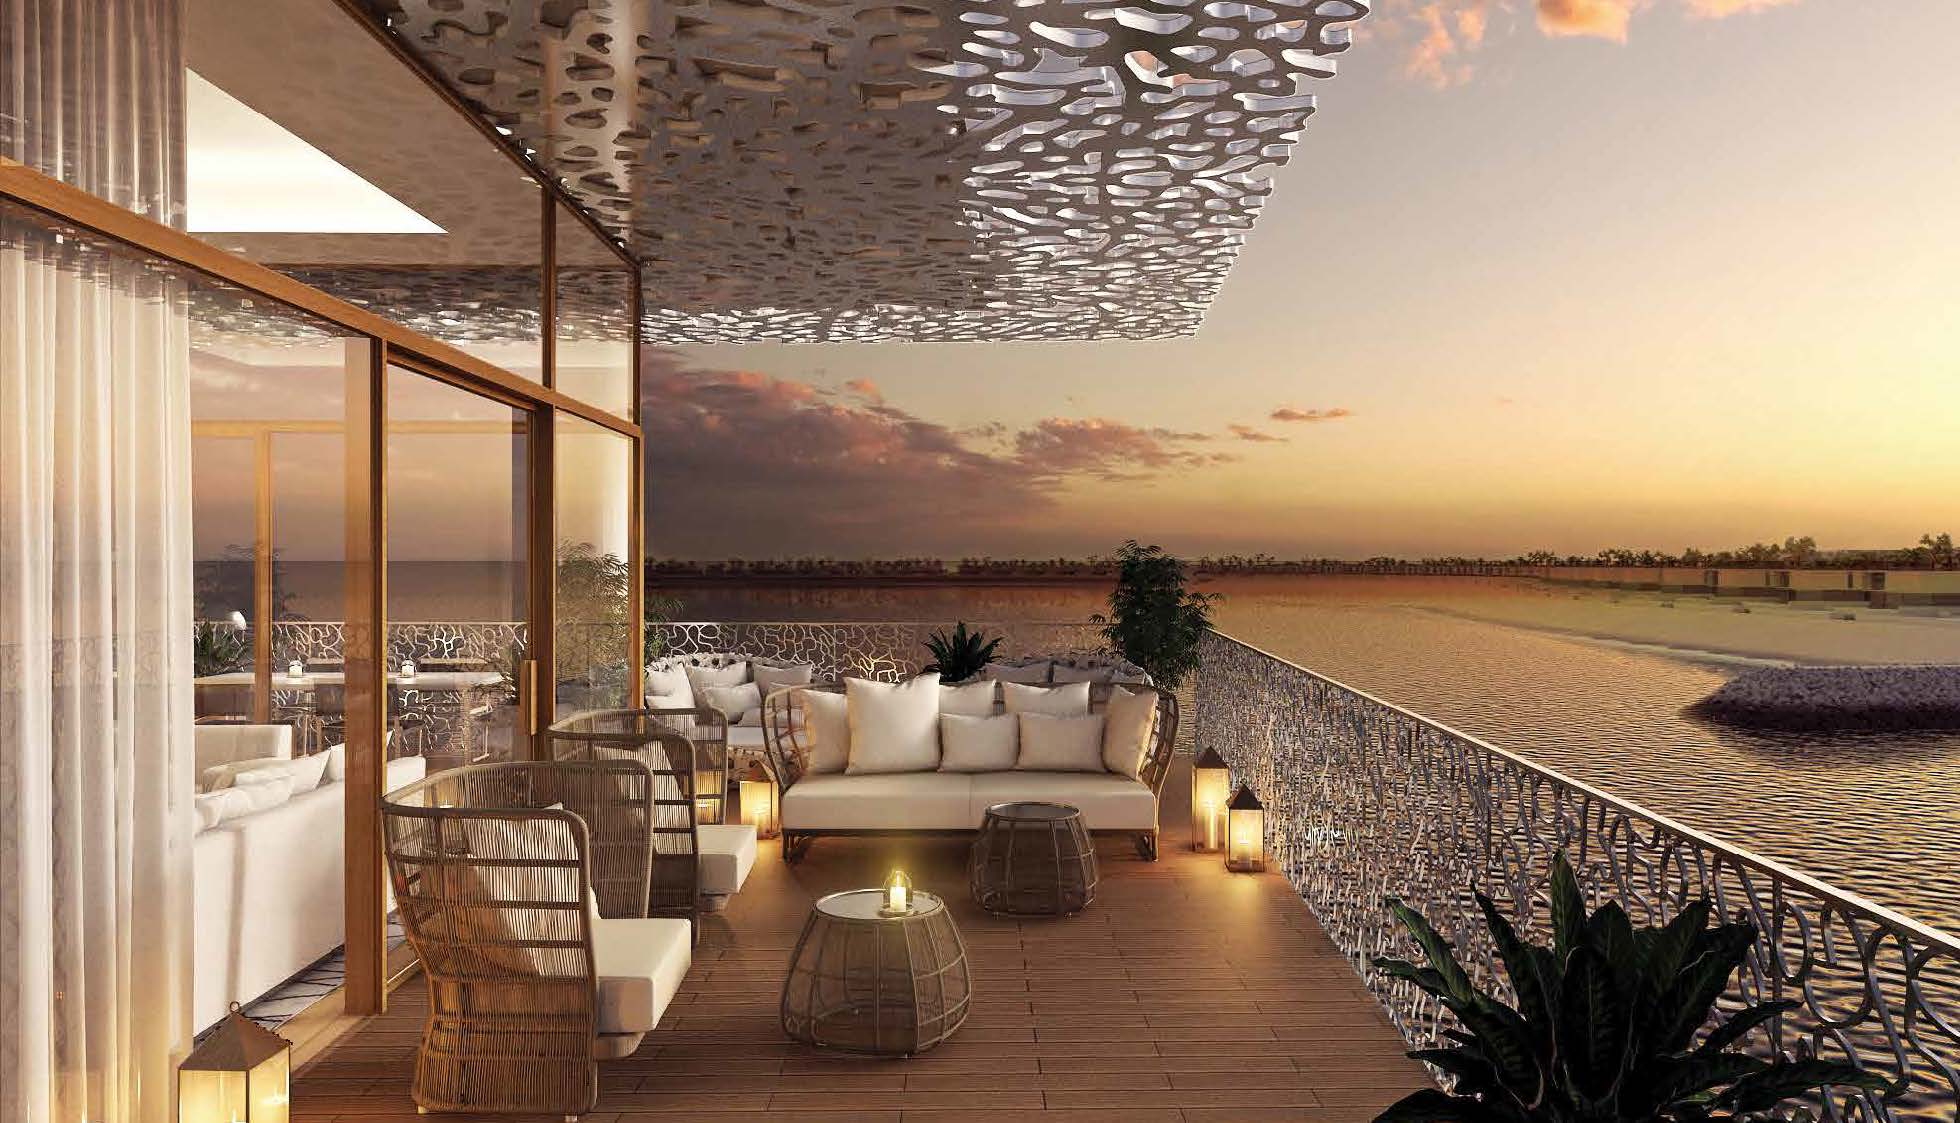 8.	Bulgari Hotel & Resorts, Dubai